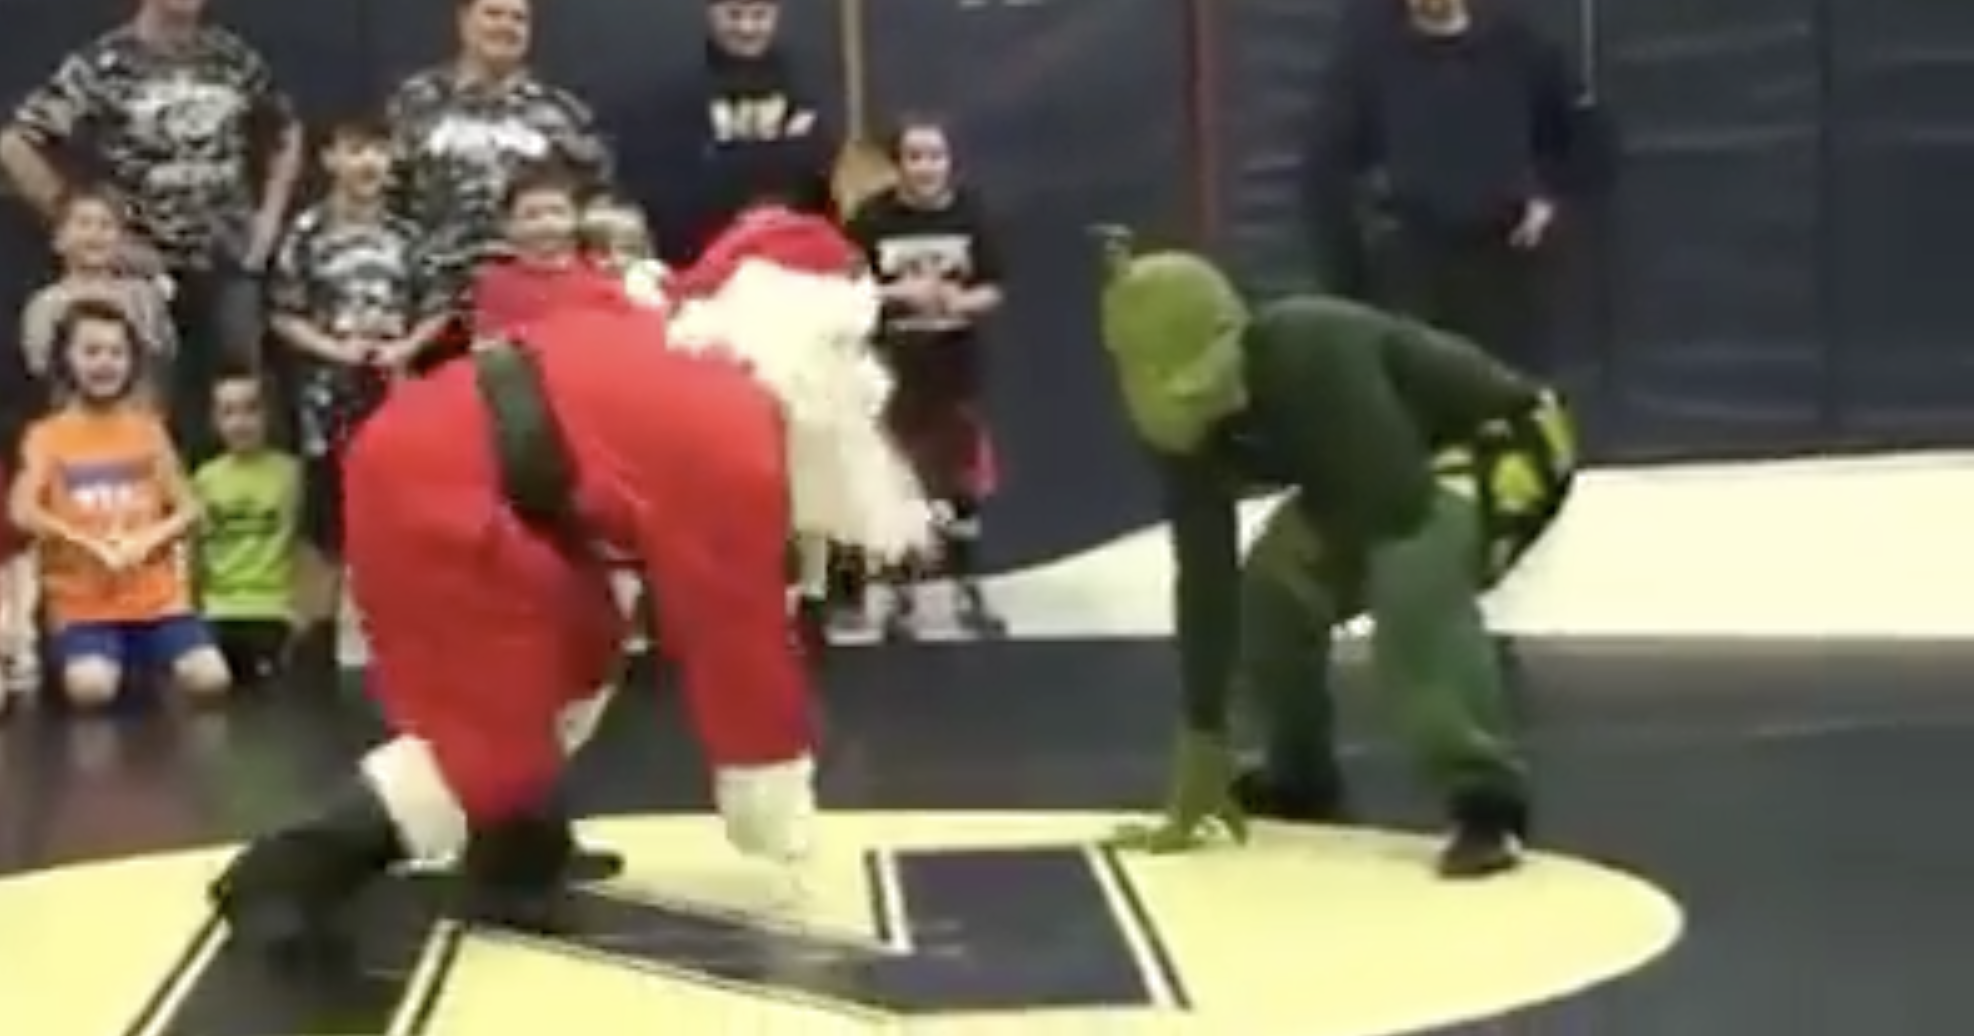 Santa Claus Wrestling Png - Santa Claus Slams The Grinch On A Wrestling Match